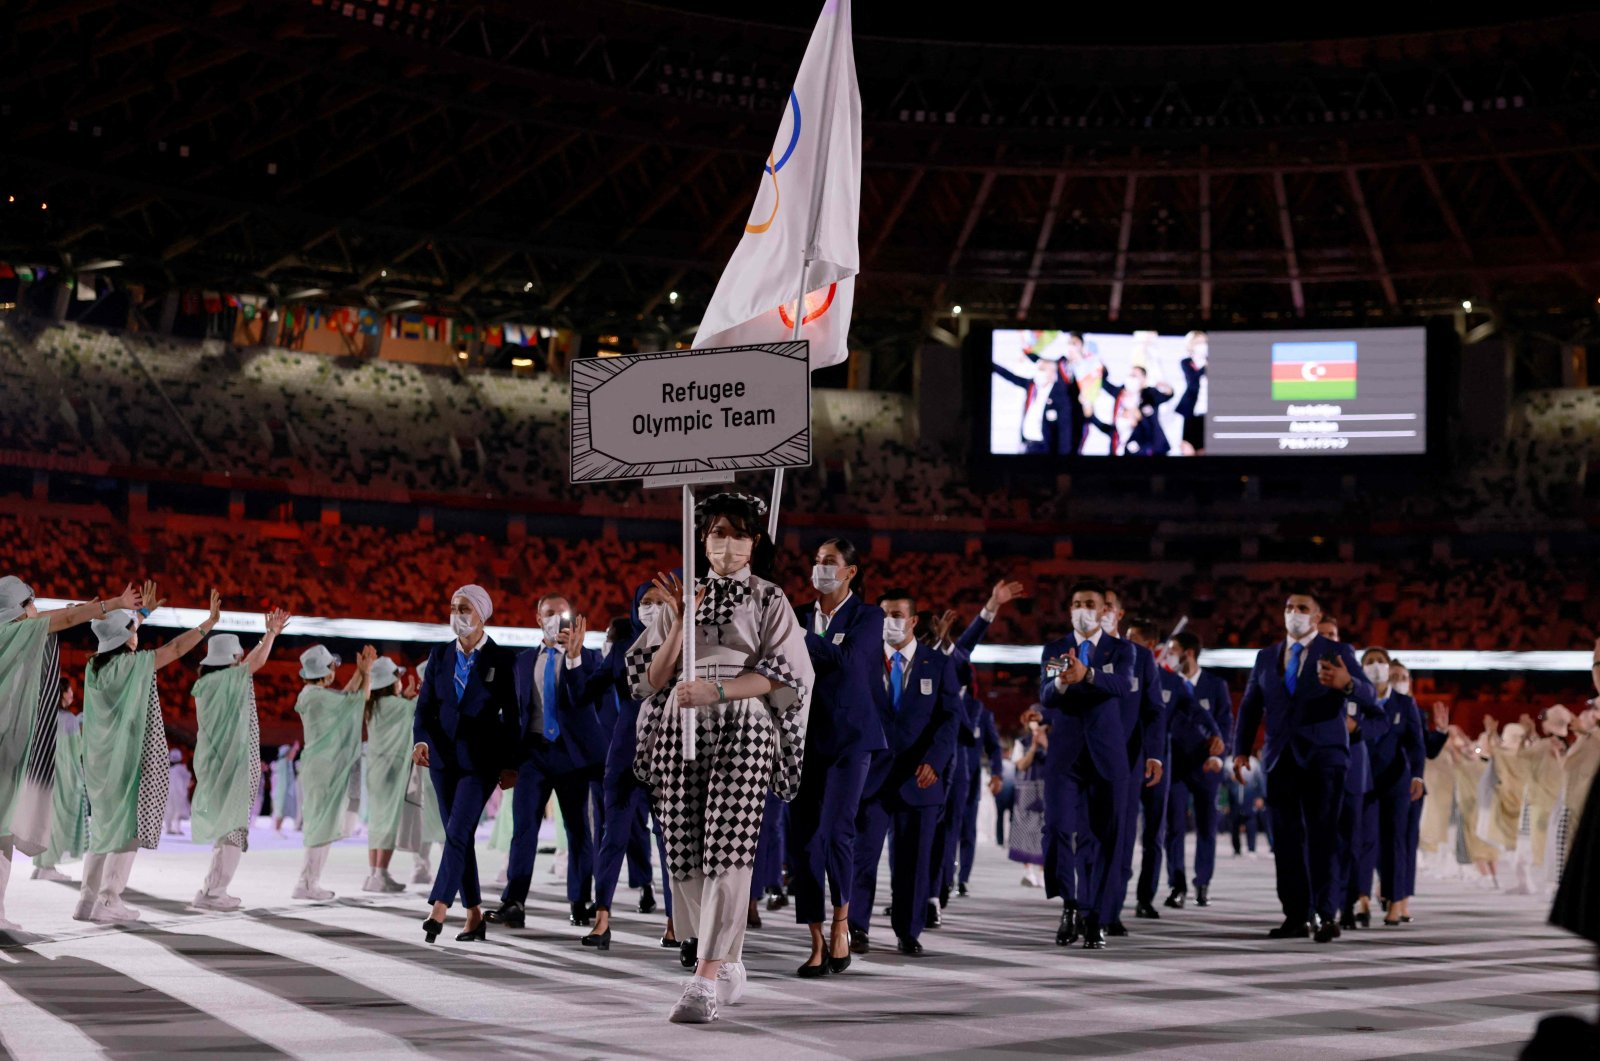 Members of the Refugee Olympic Team parade during the opening ceremony of the Tokyo 2020 Olympic Games, at the Olympic Stadium, in Tokyo, Japan, July 23, 2021. (AFP Photo)